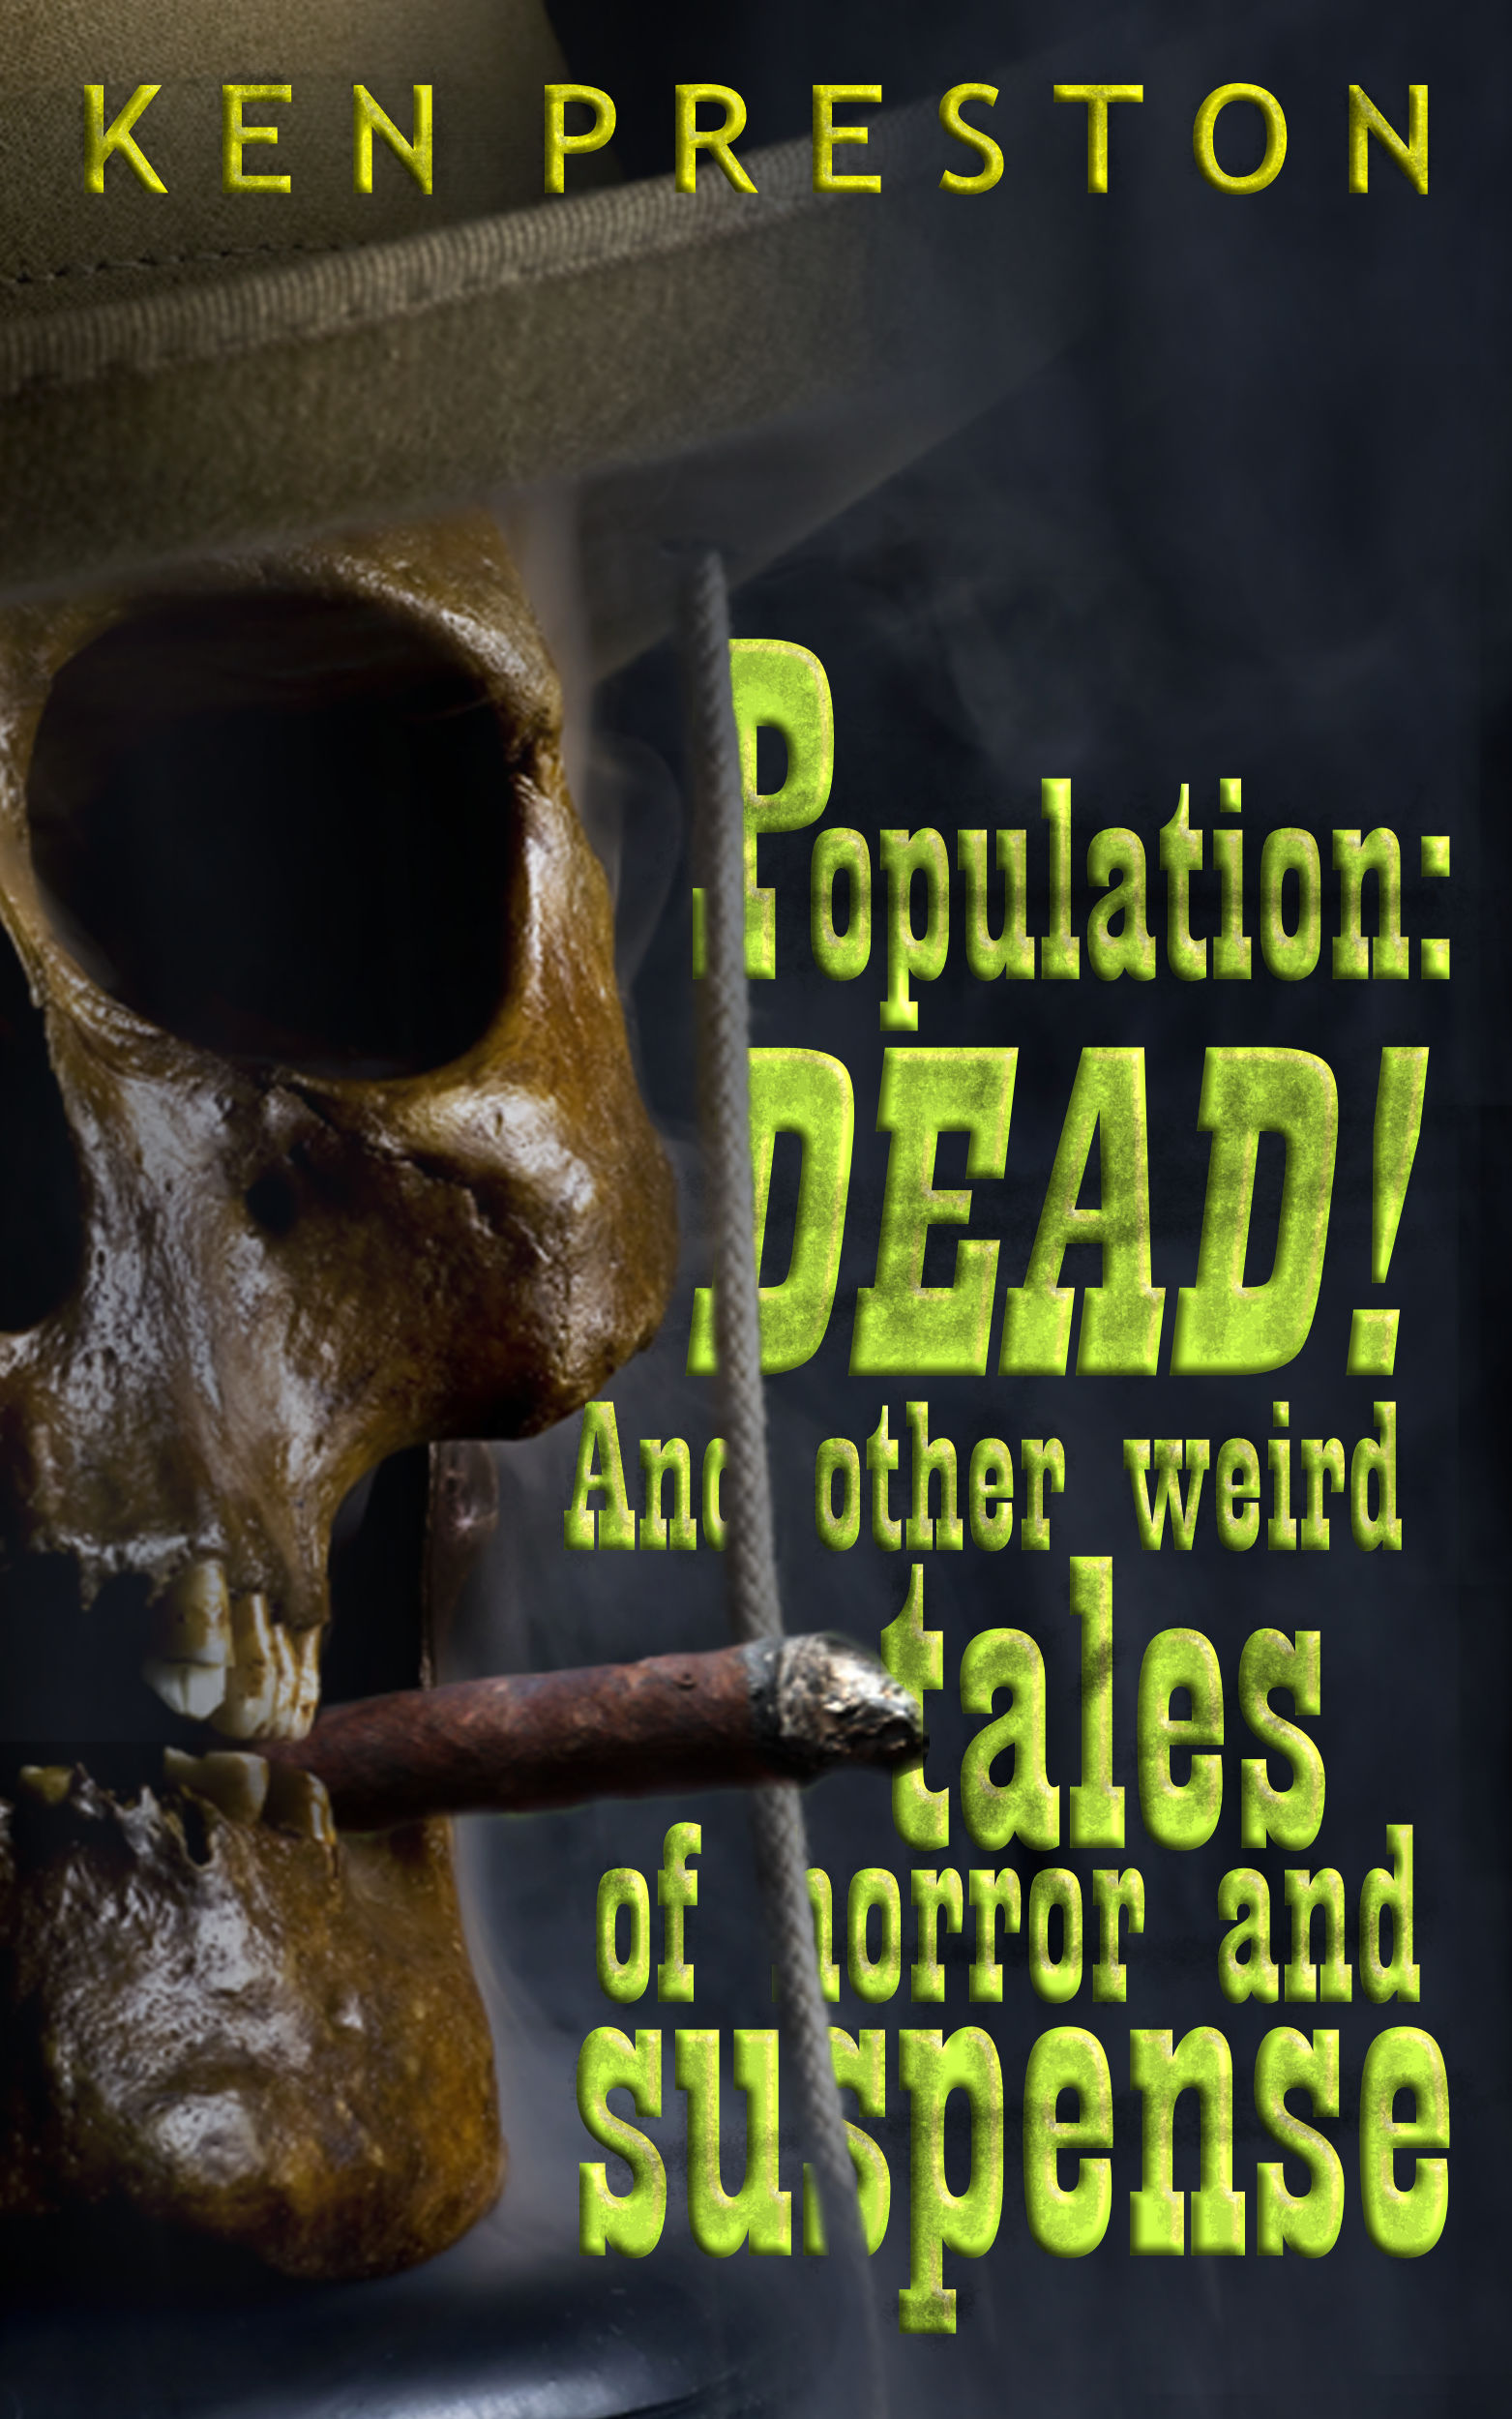 Population:DEAD! and other weird tales of horror and suspense Book Cover